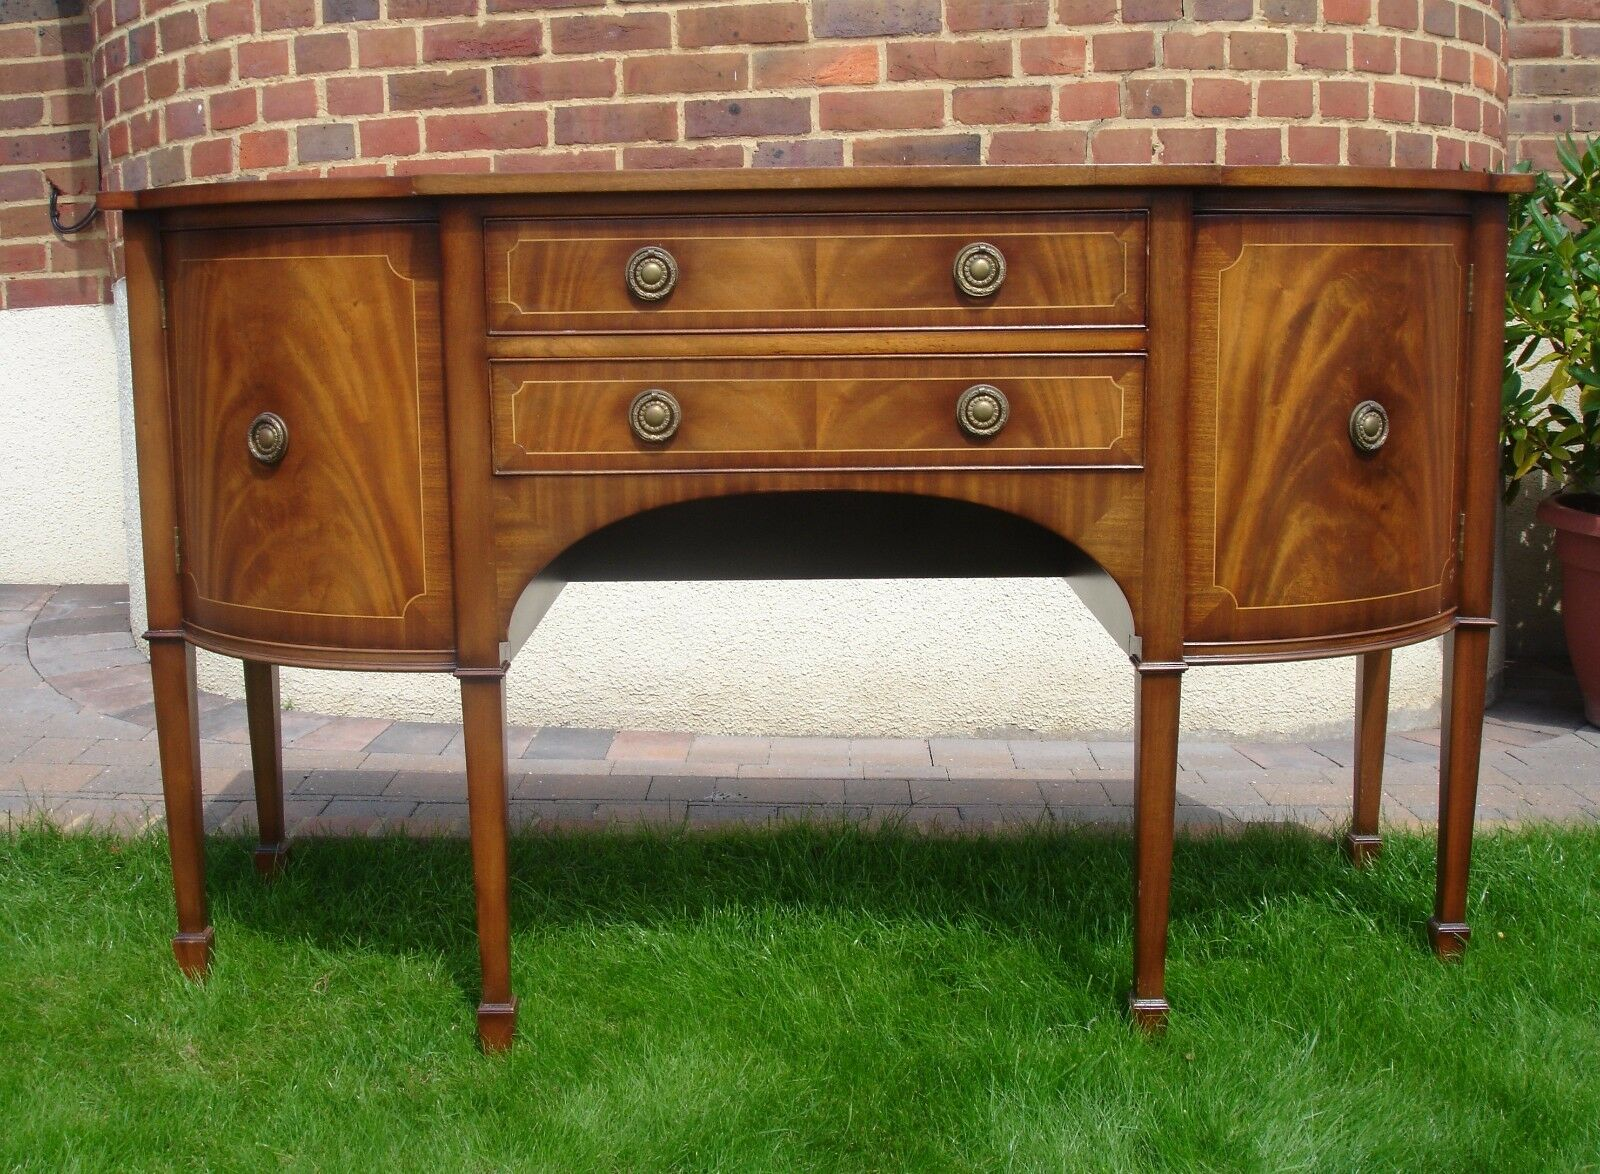 Antique style bow front sideboard g t rackstraw of for Sideboard vintage look